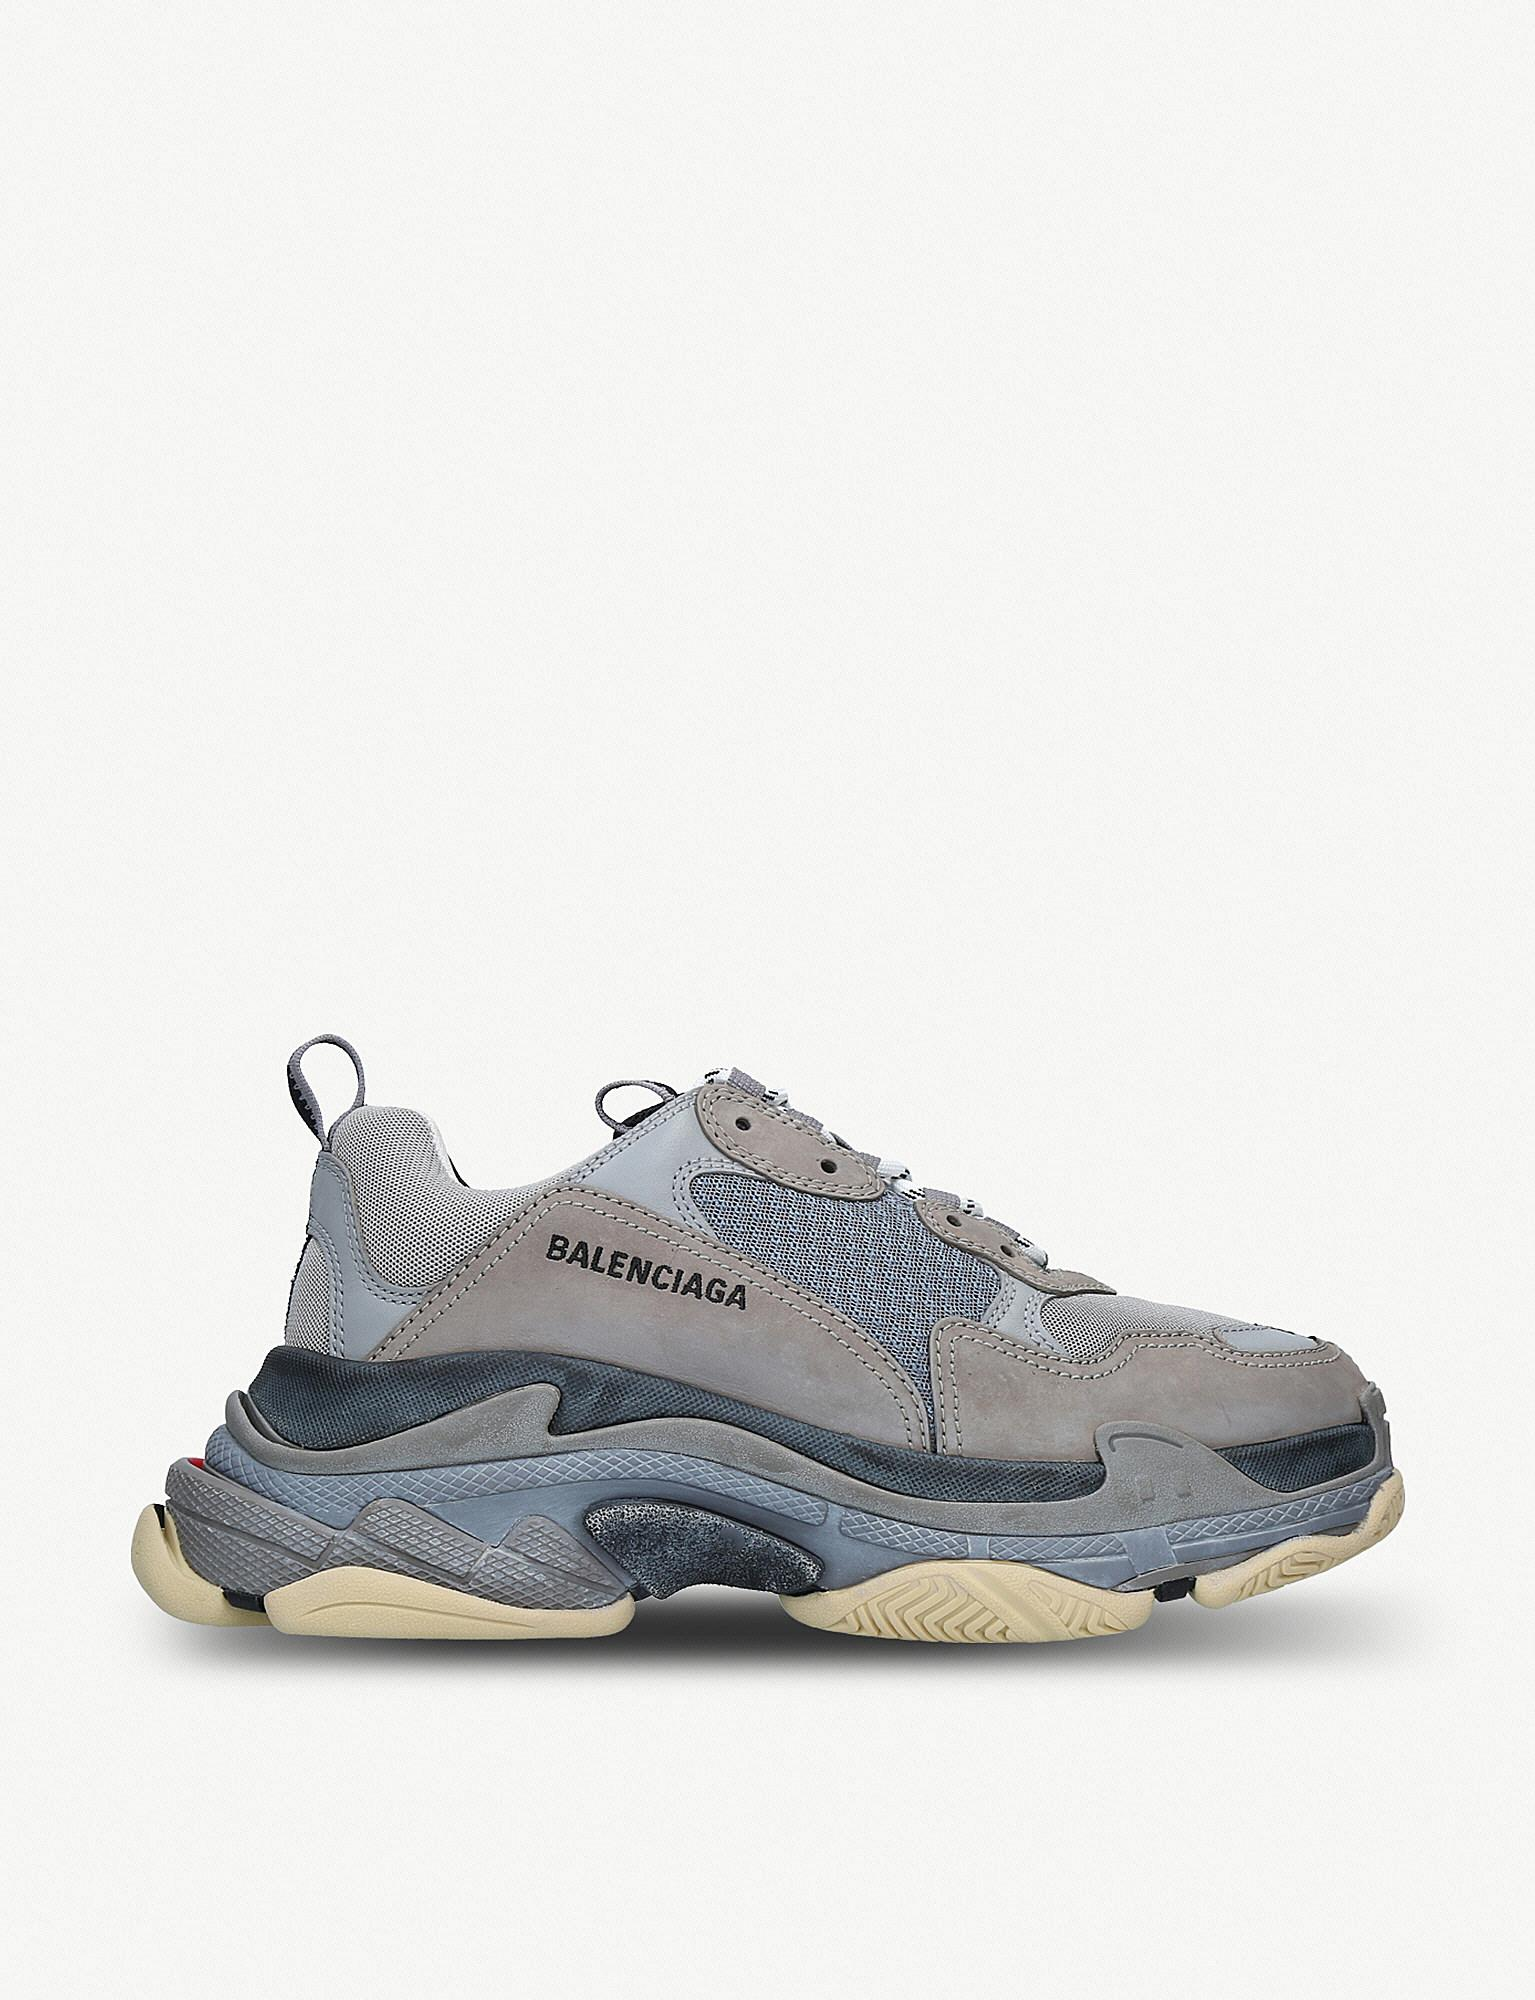 59d6ce3a213dc Balenciaga Triple S Two-tone Leather And Mesh Trainers in Gray for ...